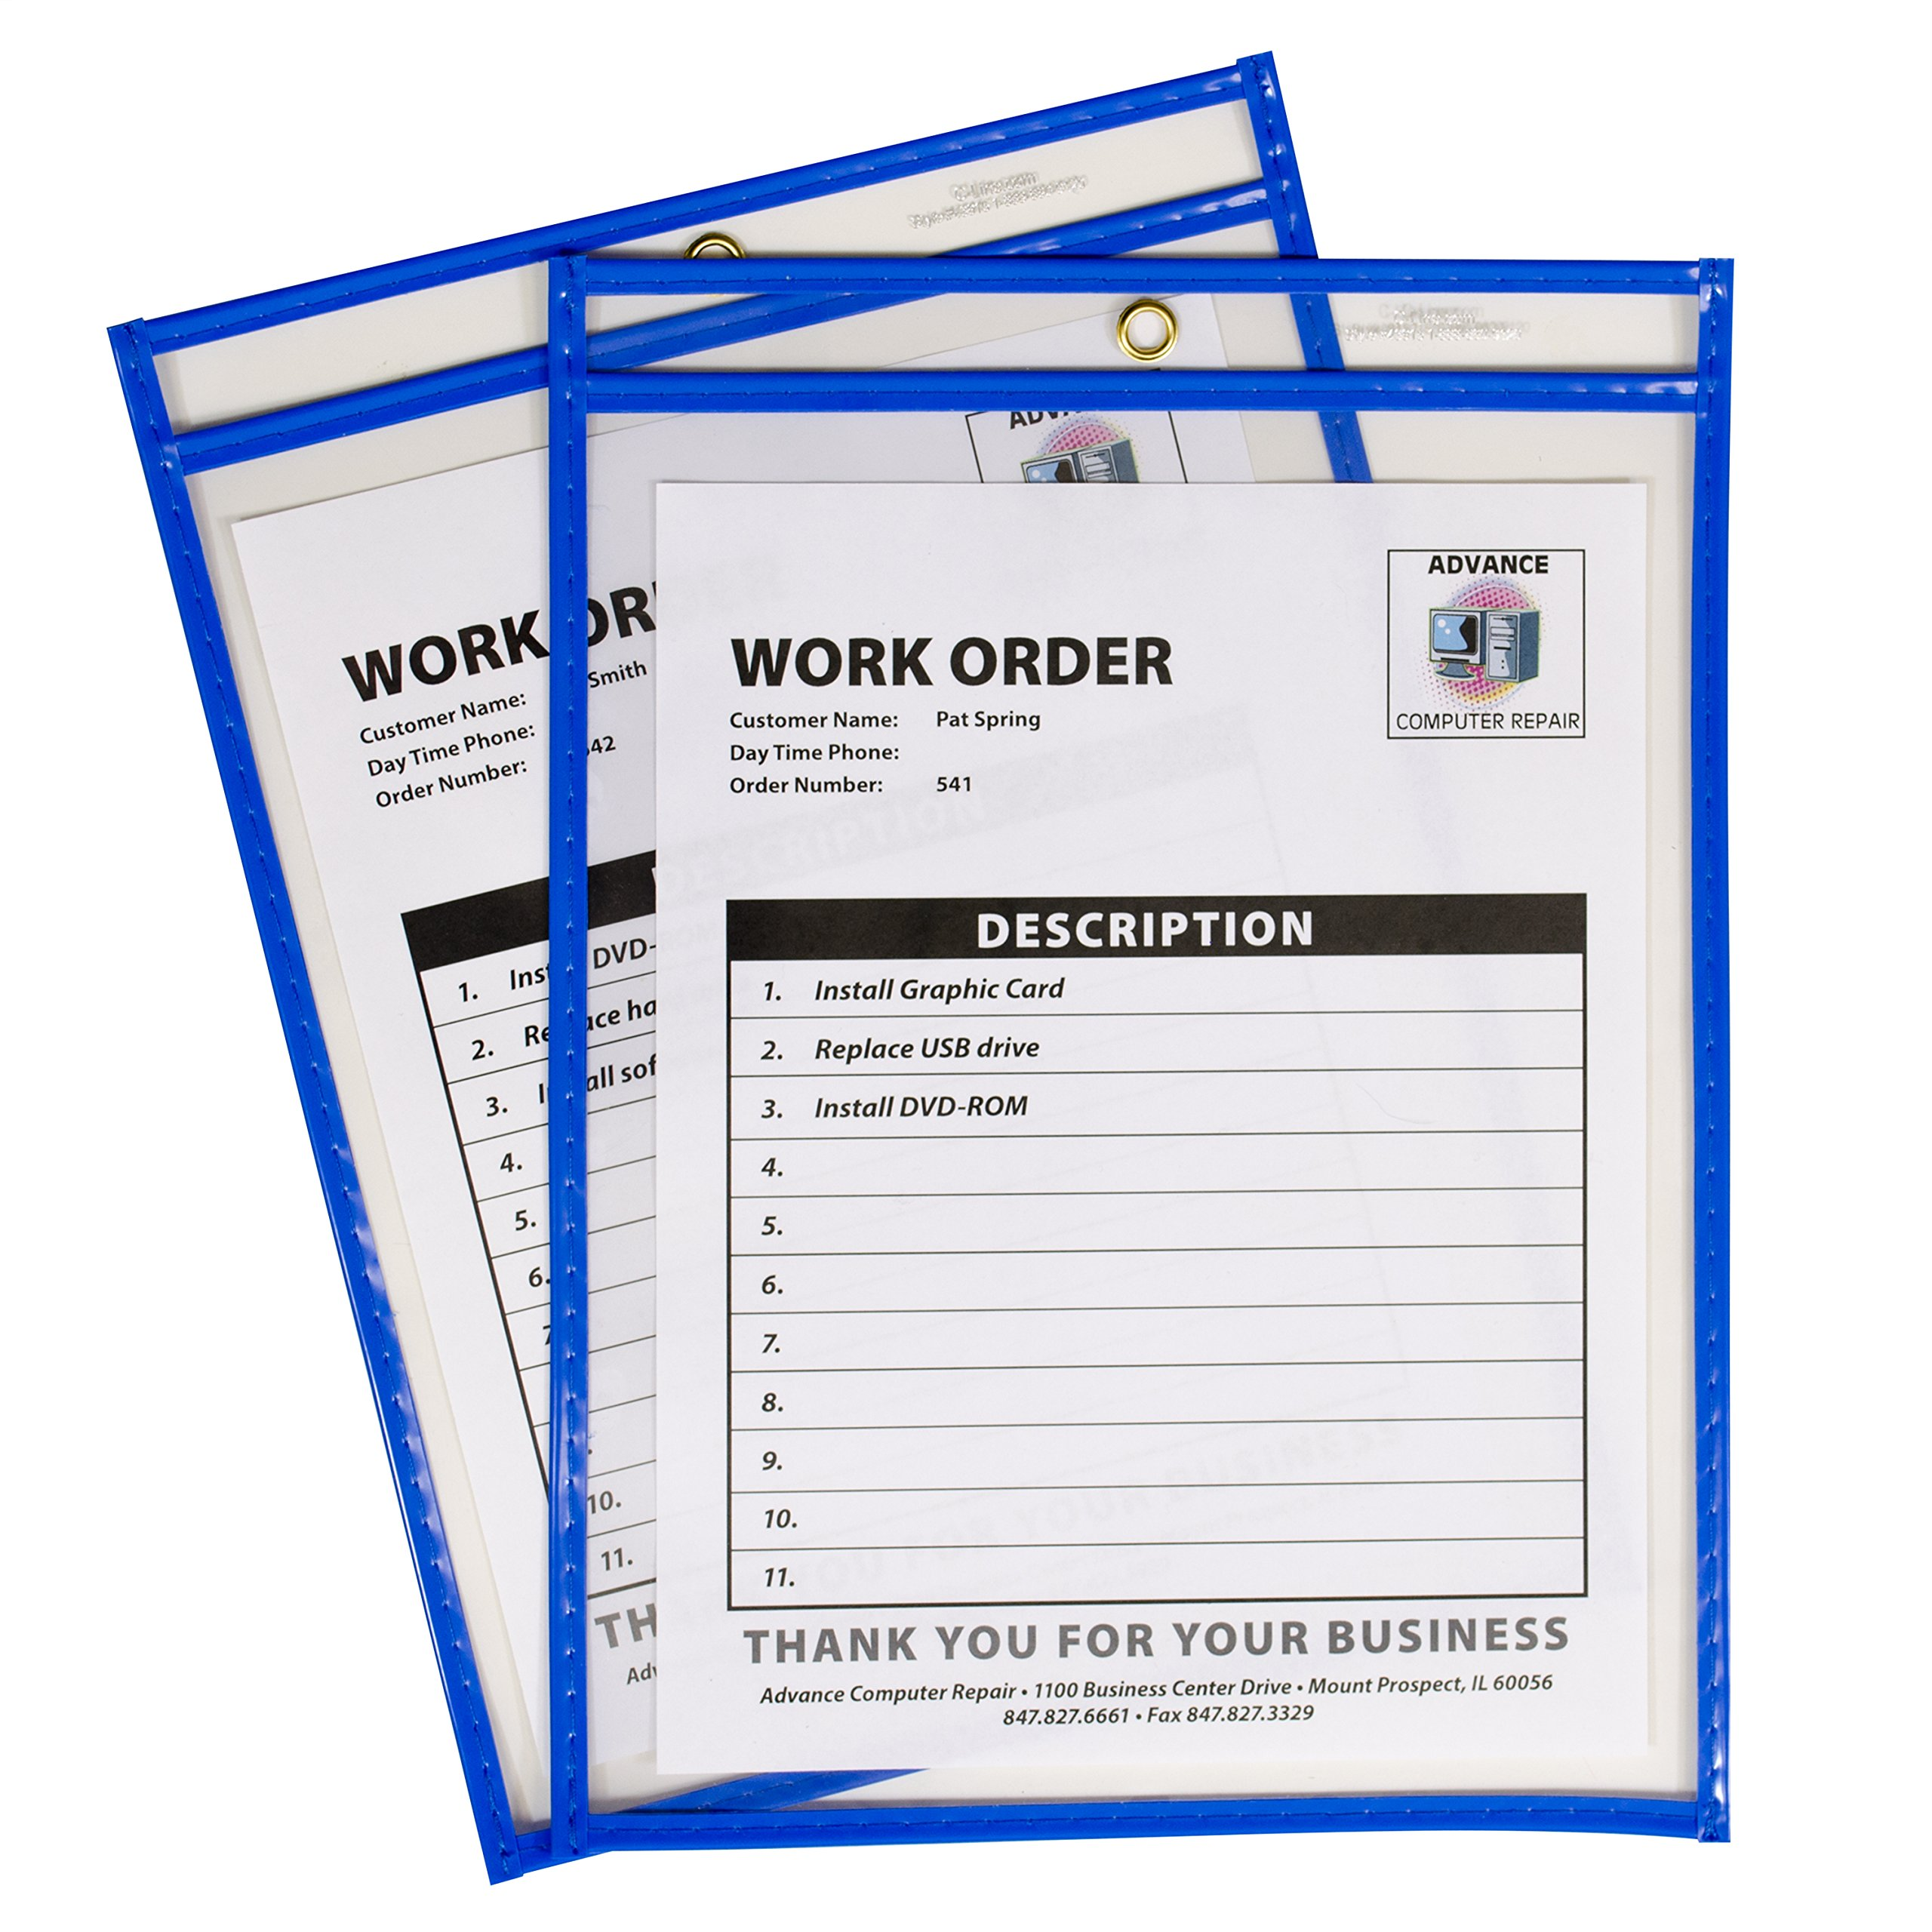 C-Line Neon Stitched Shop Ticket Holders, Blue, Both Sides Clear, 9 x 12 Inches, 15 per Box (43915) by C-Line